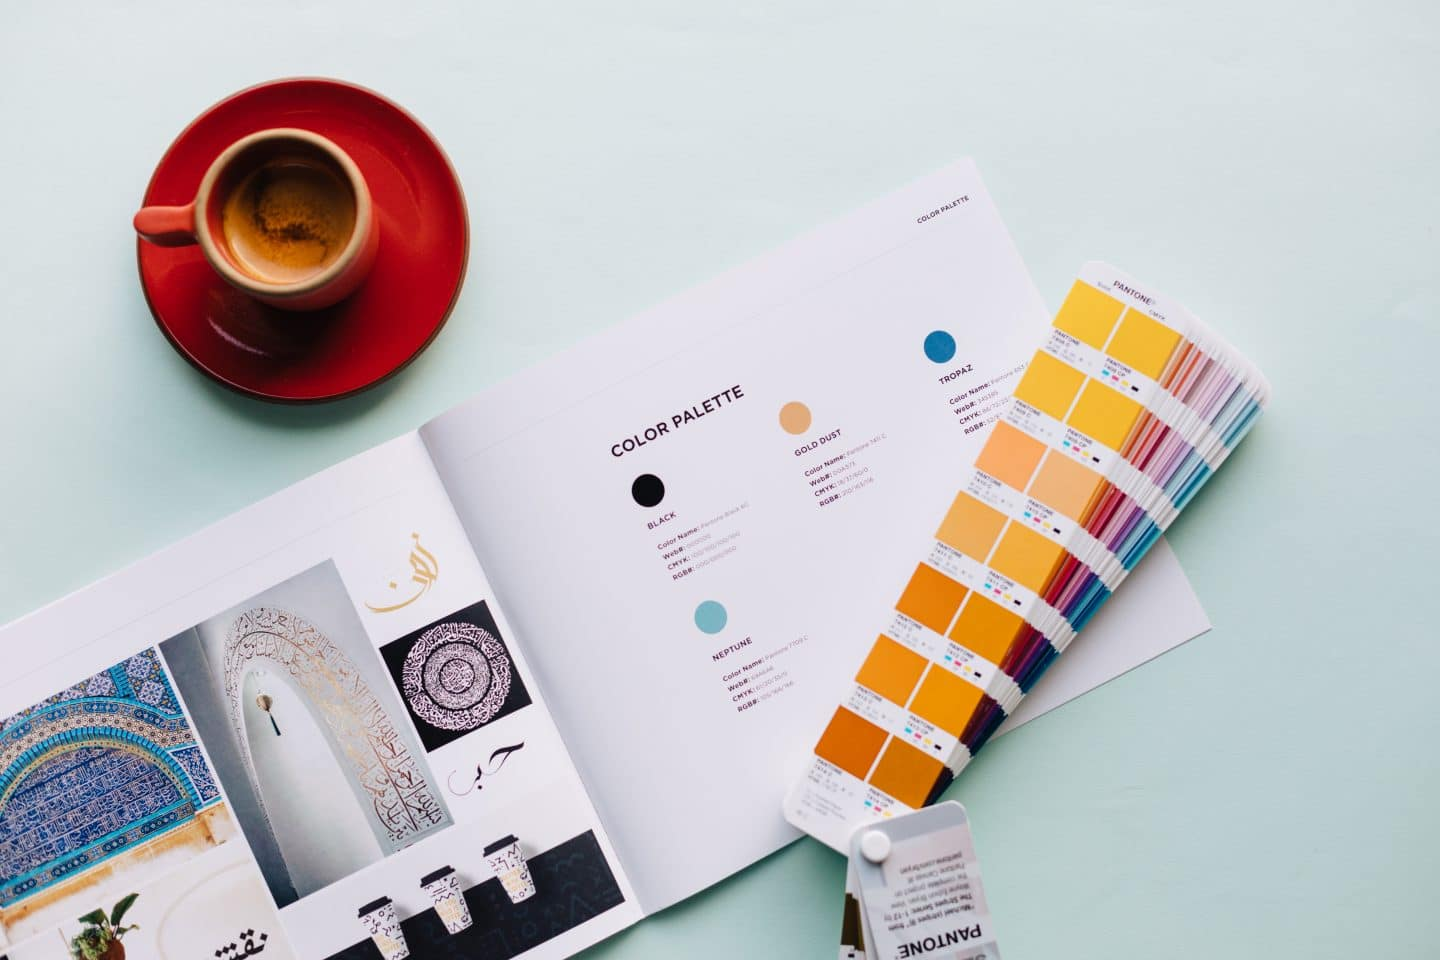 Stanza coffee brand book focusing on colors